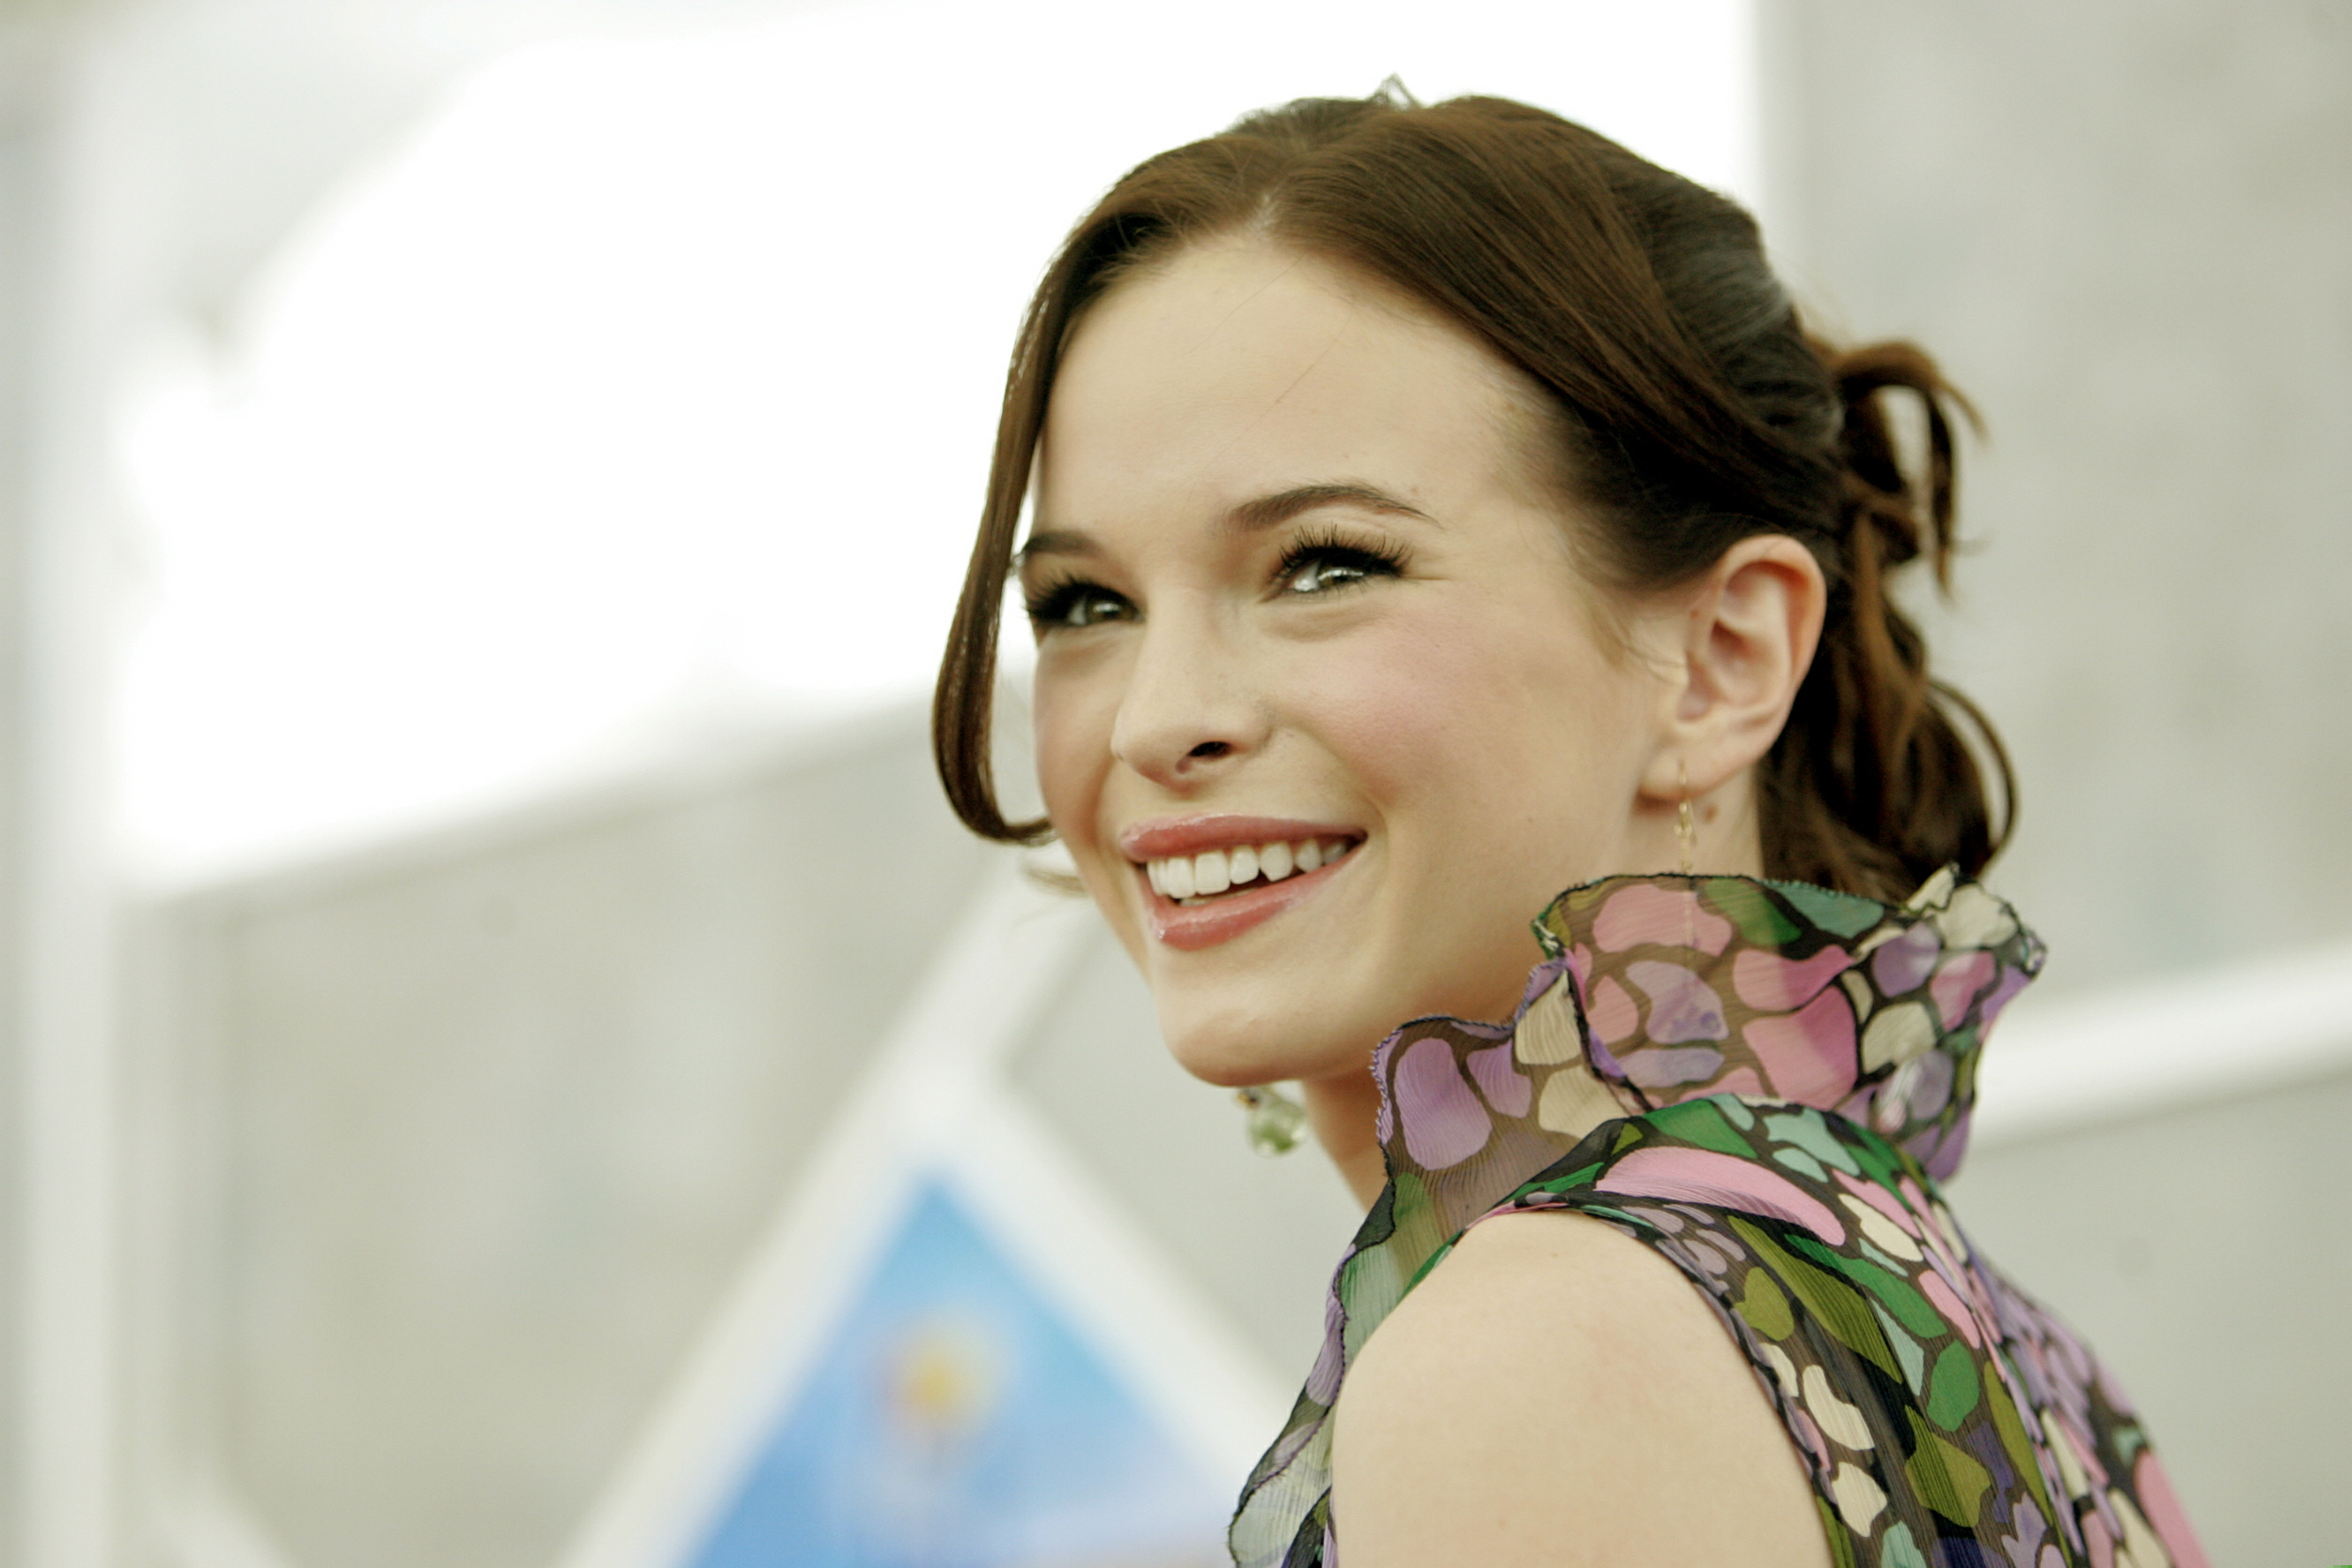 'The Flash' Star Danielle Panabaker Talks Naperville Ahead ...